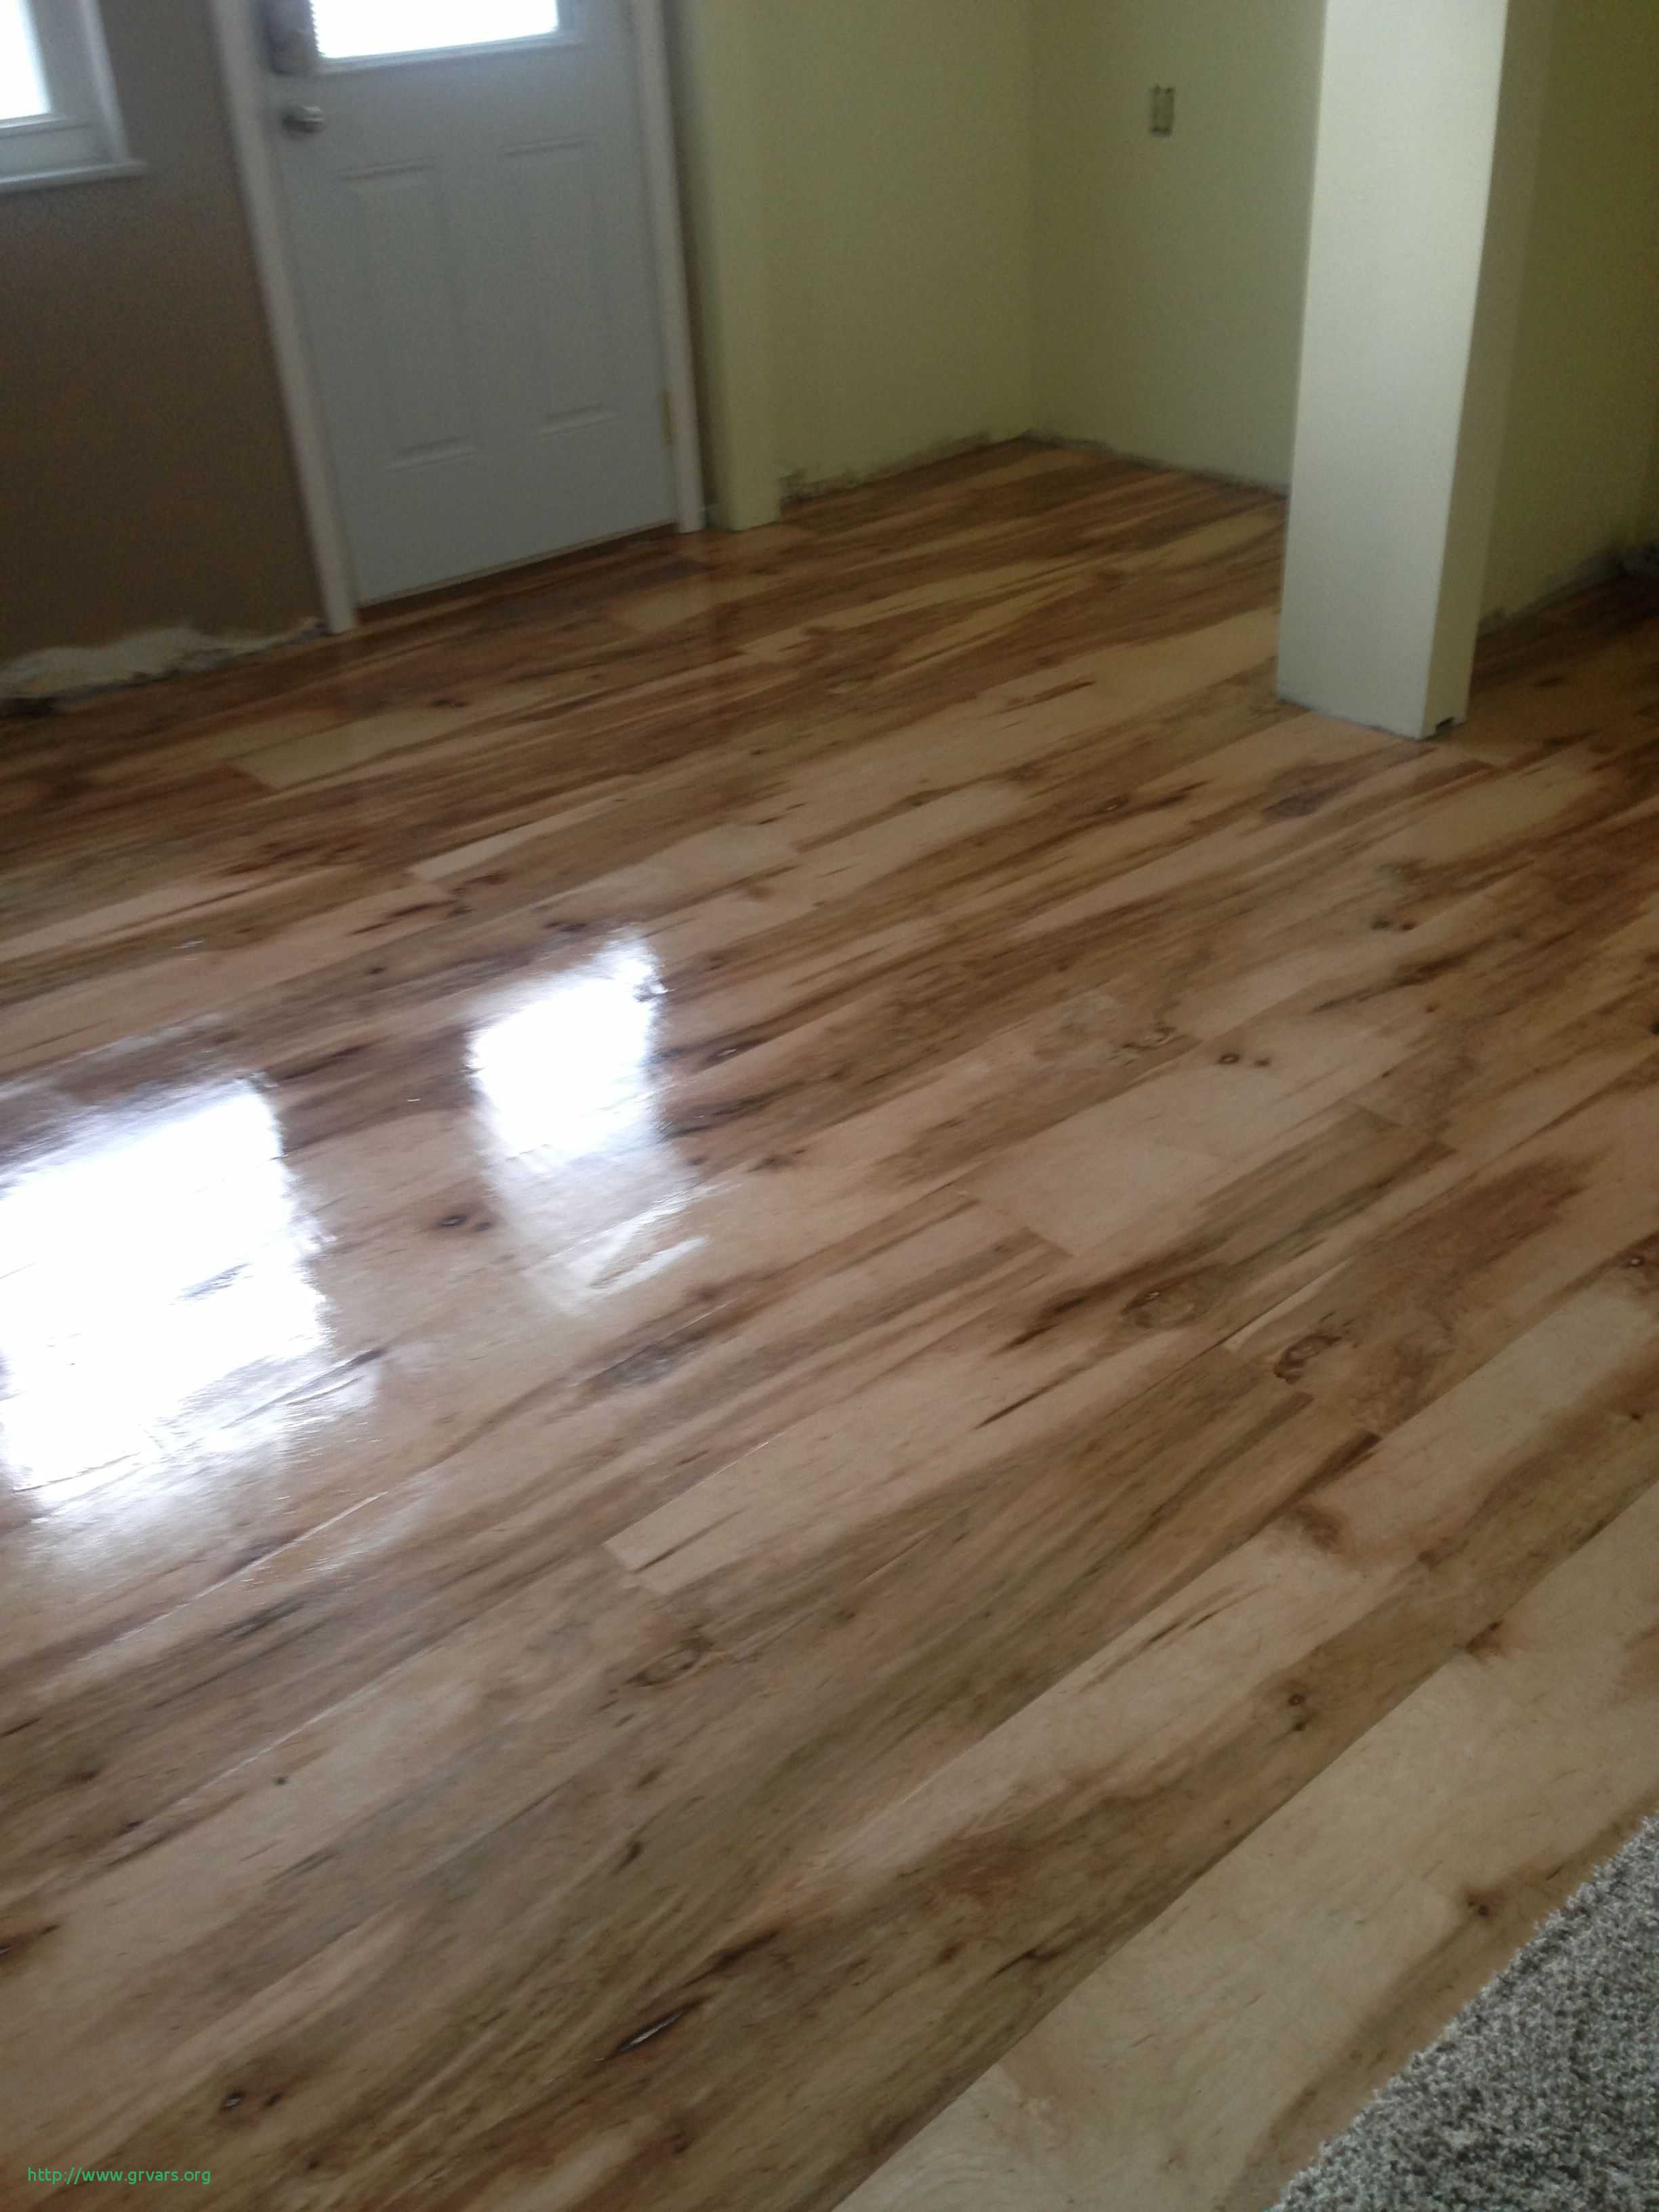 laminate wood flooring vs hardwood cost of 21 inspirant best prices for laminate wood flooring ideas blog pertaining to best prices for laminate wood flooring unique engaging discount hardwood flooring 5 where to buy inspirational